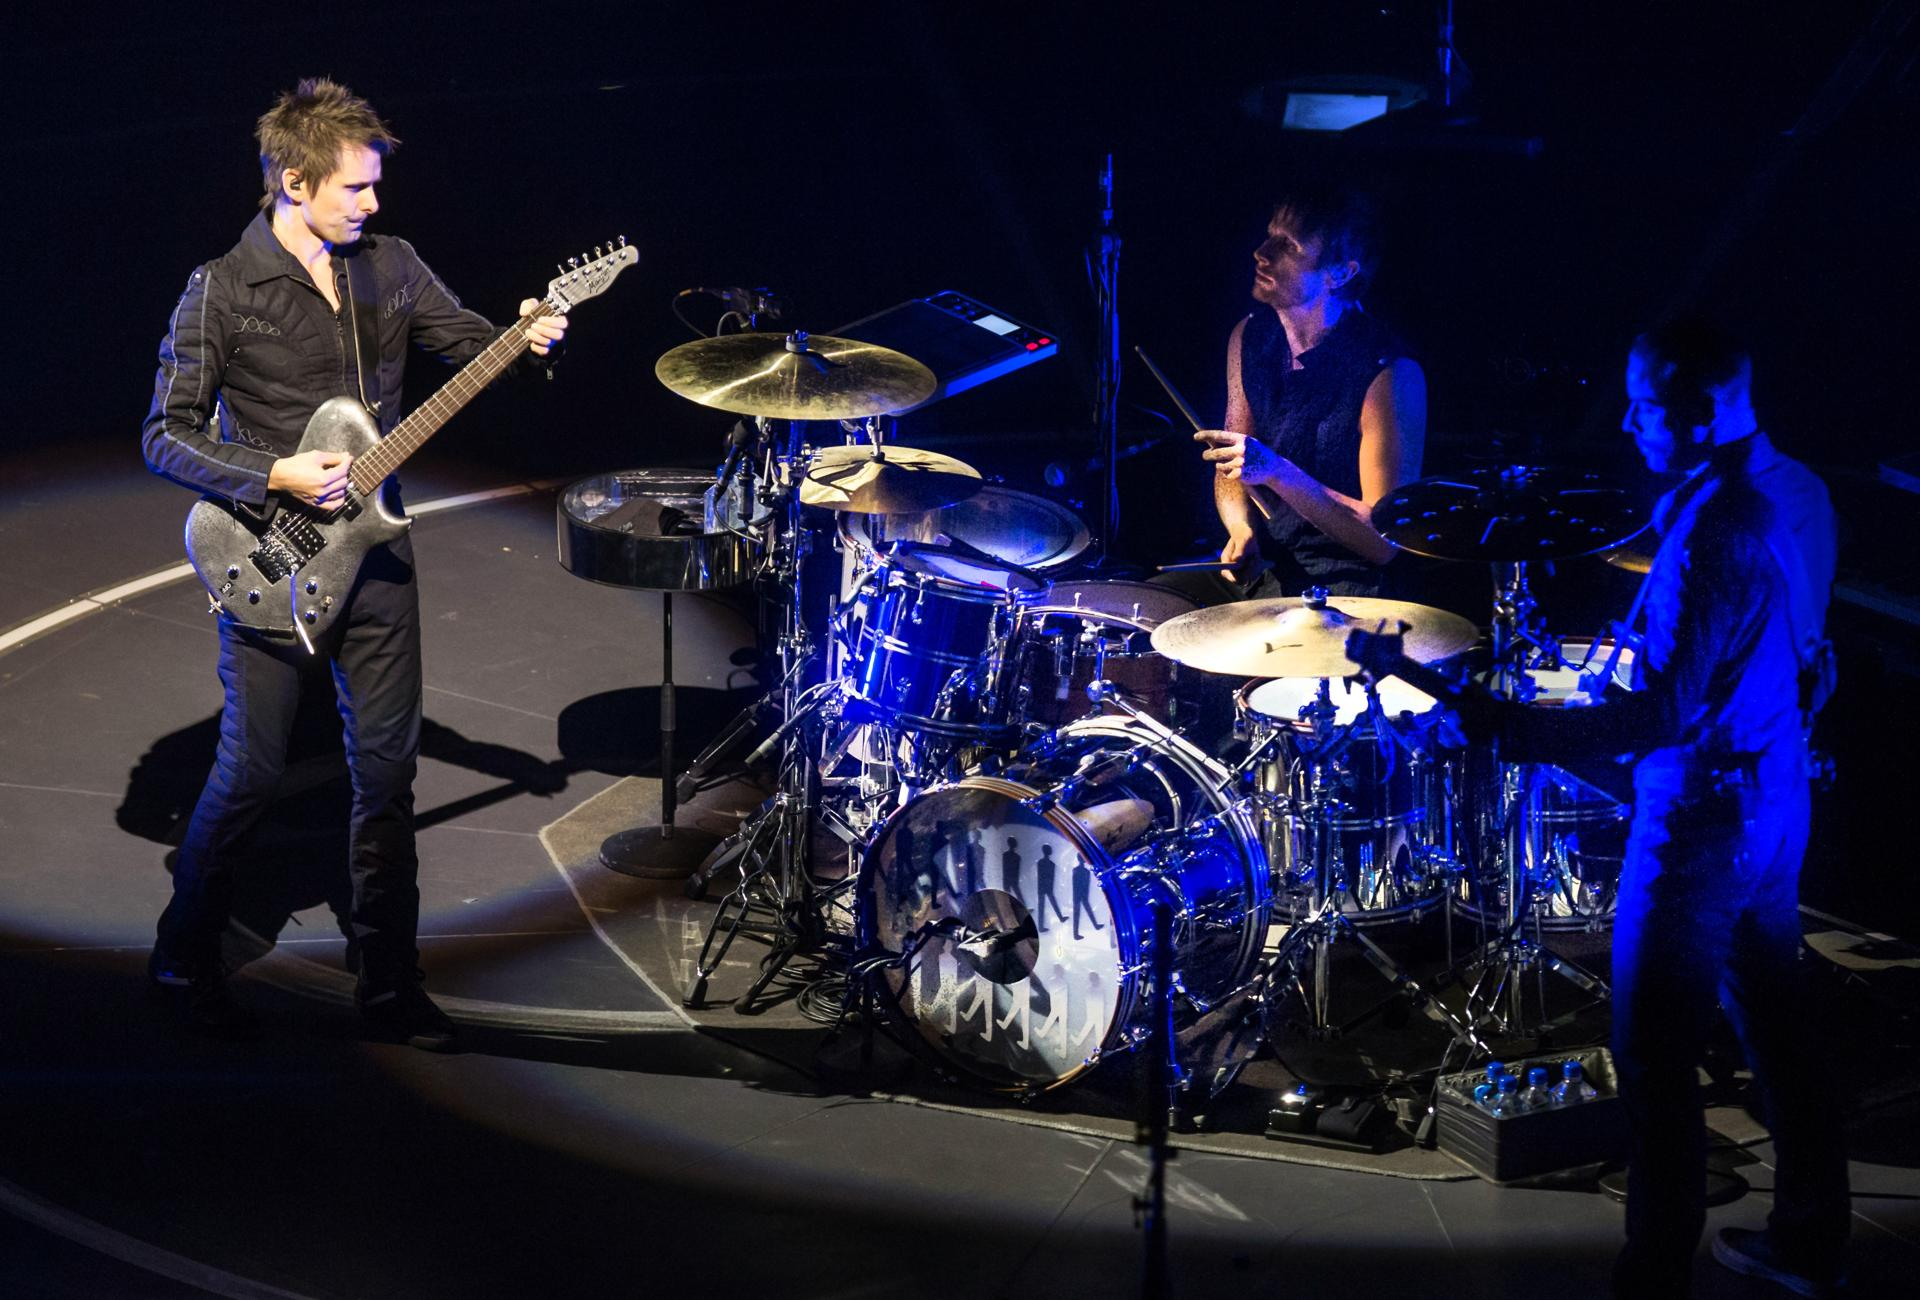 Muse performed at the TD Garden in Boston.